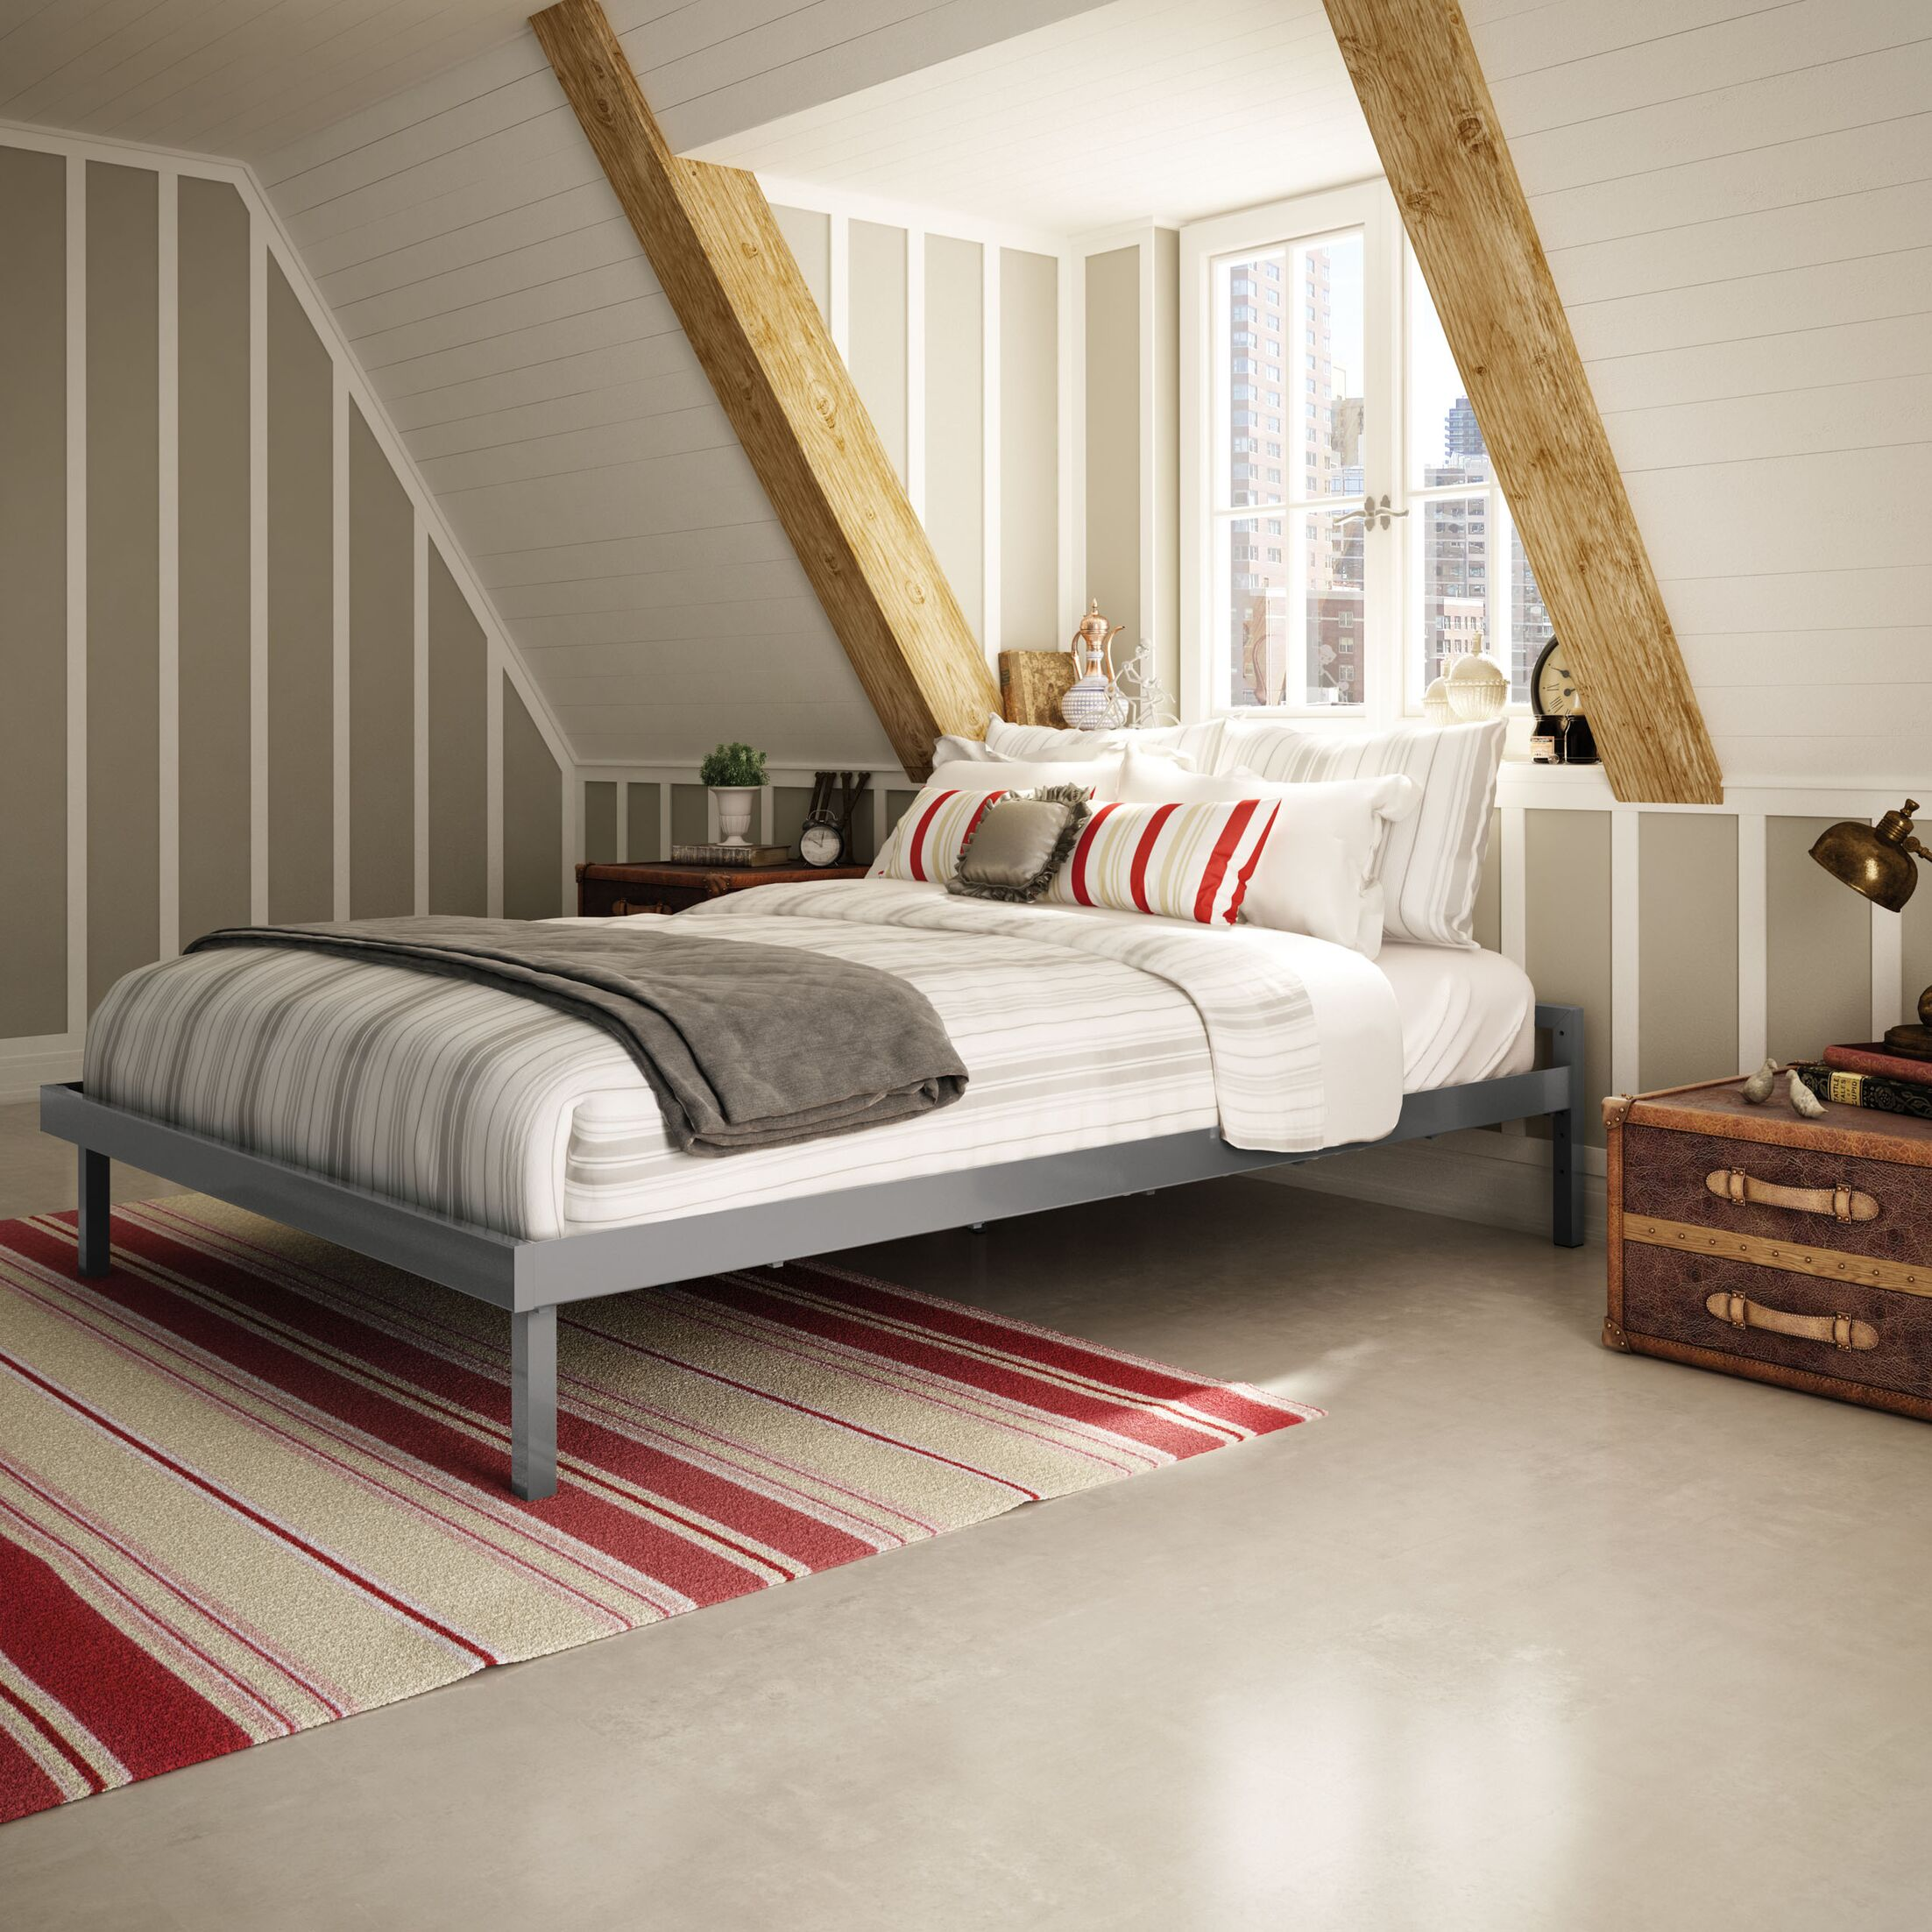 Attic Platform Bed Color: Glossy Grey, Size: Queen